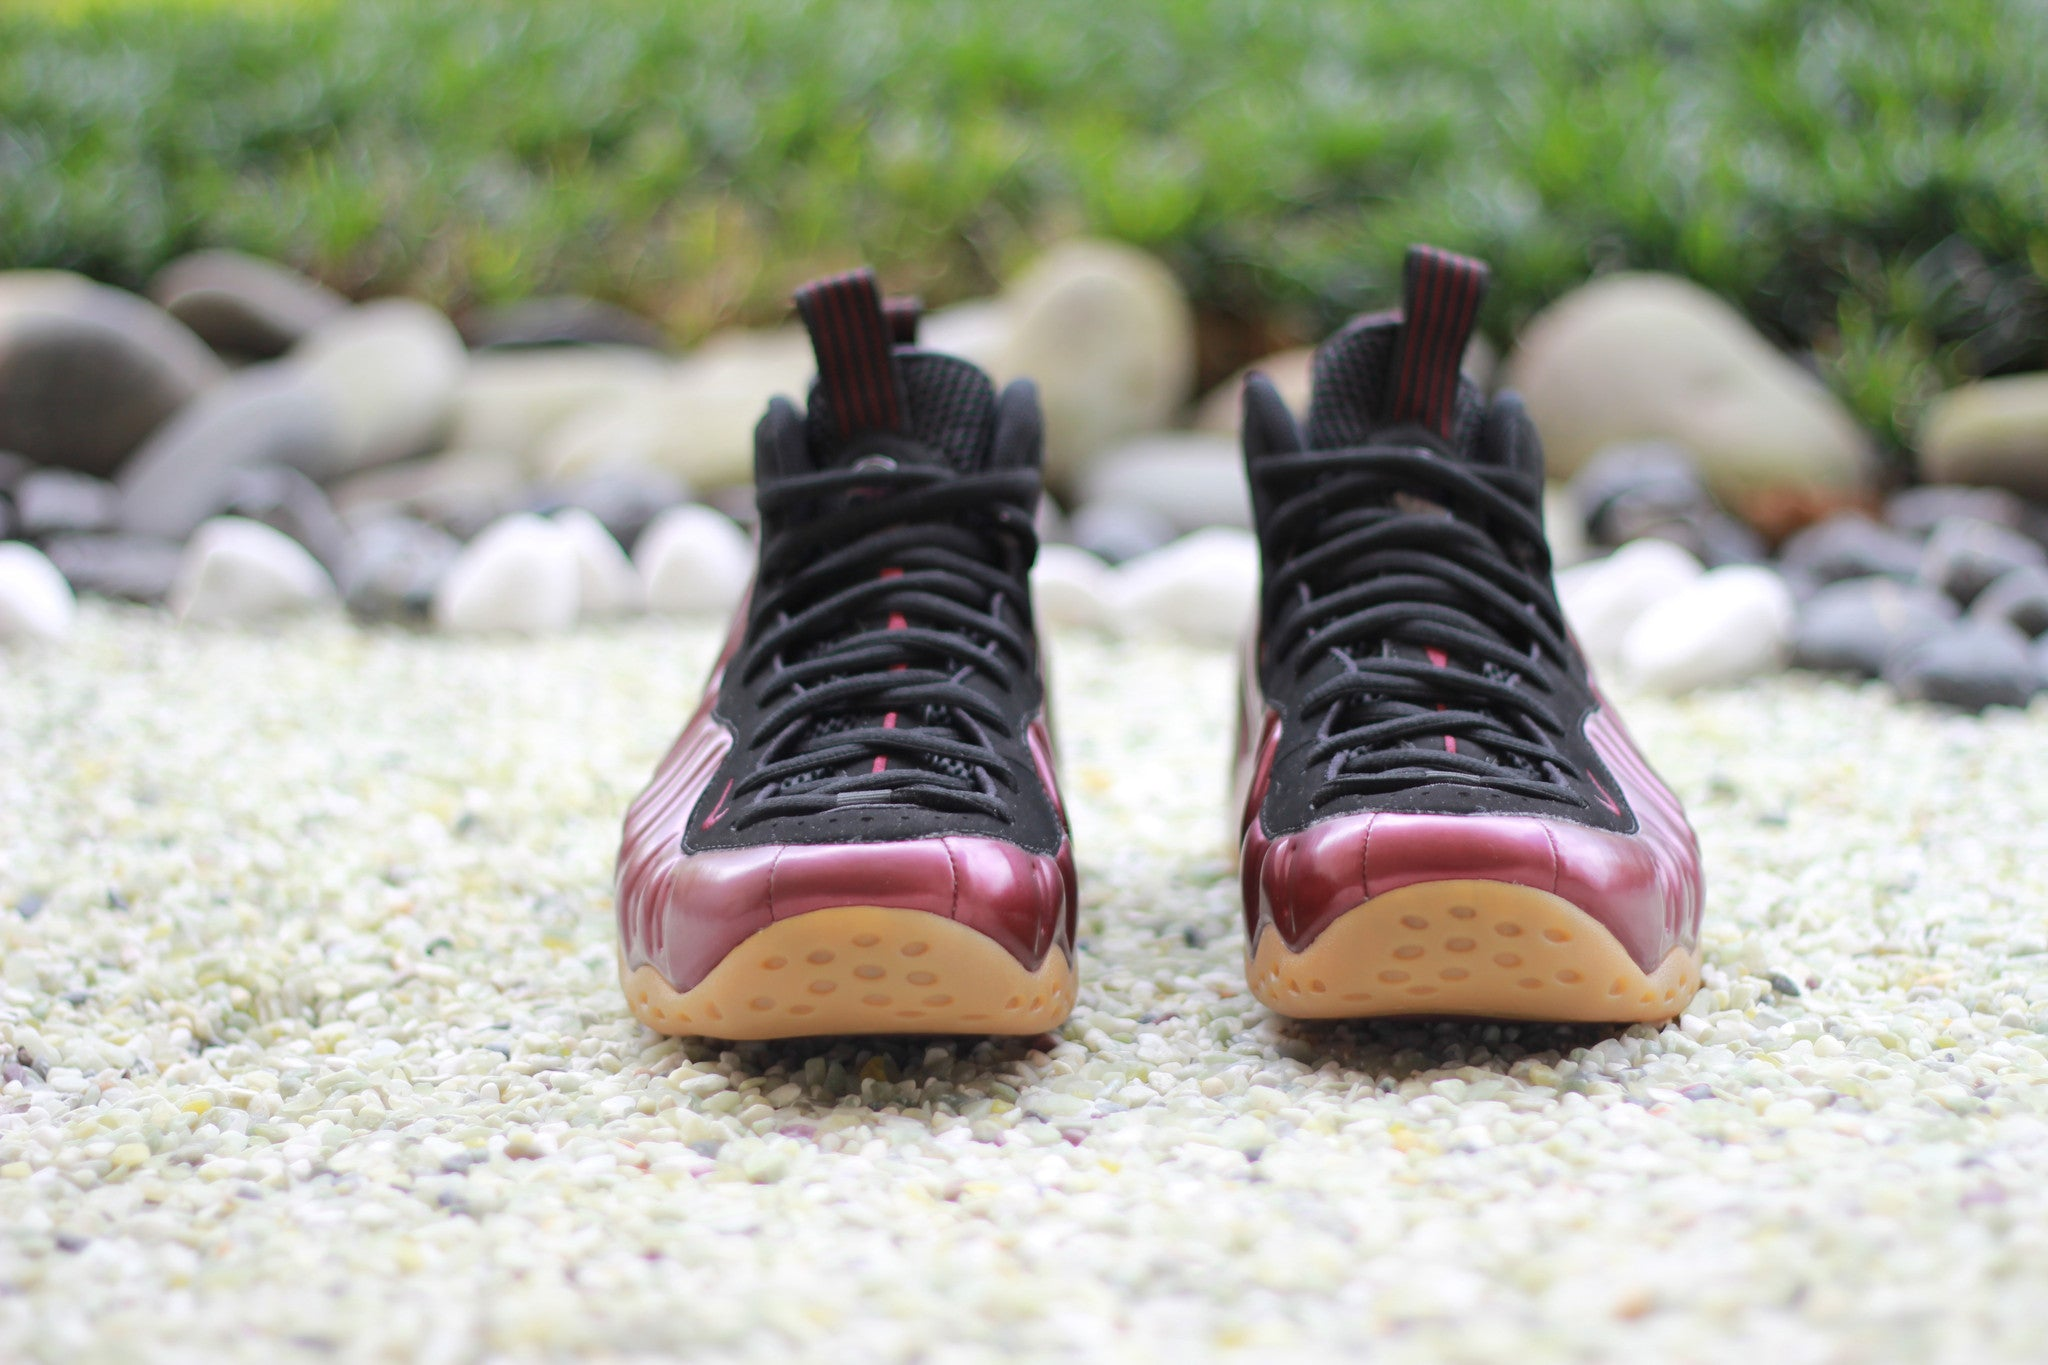 Nike-Air-Foamposite-One-maroon-2016-release